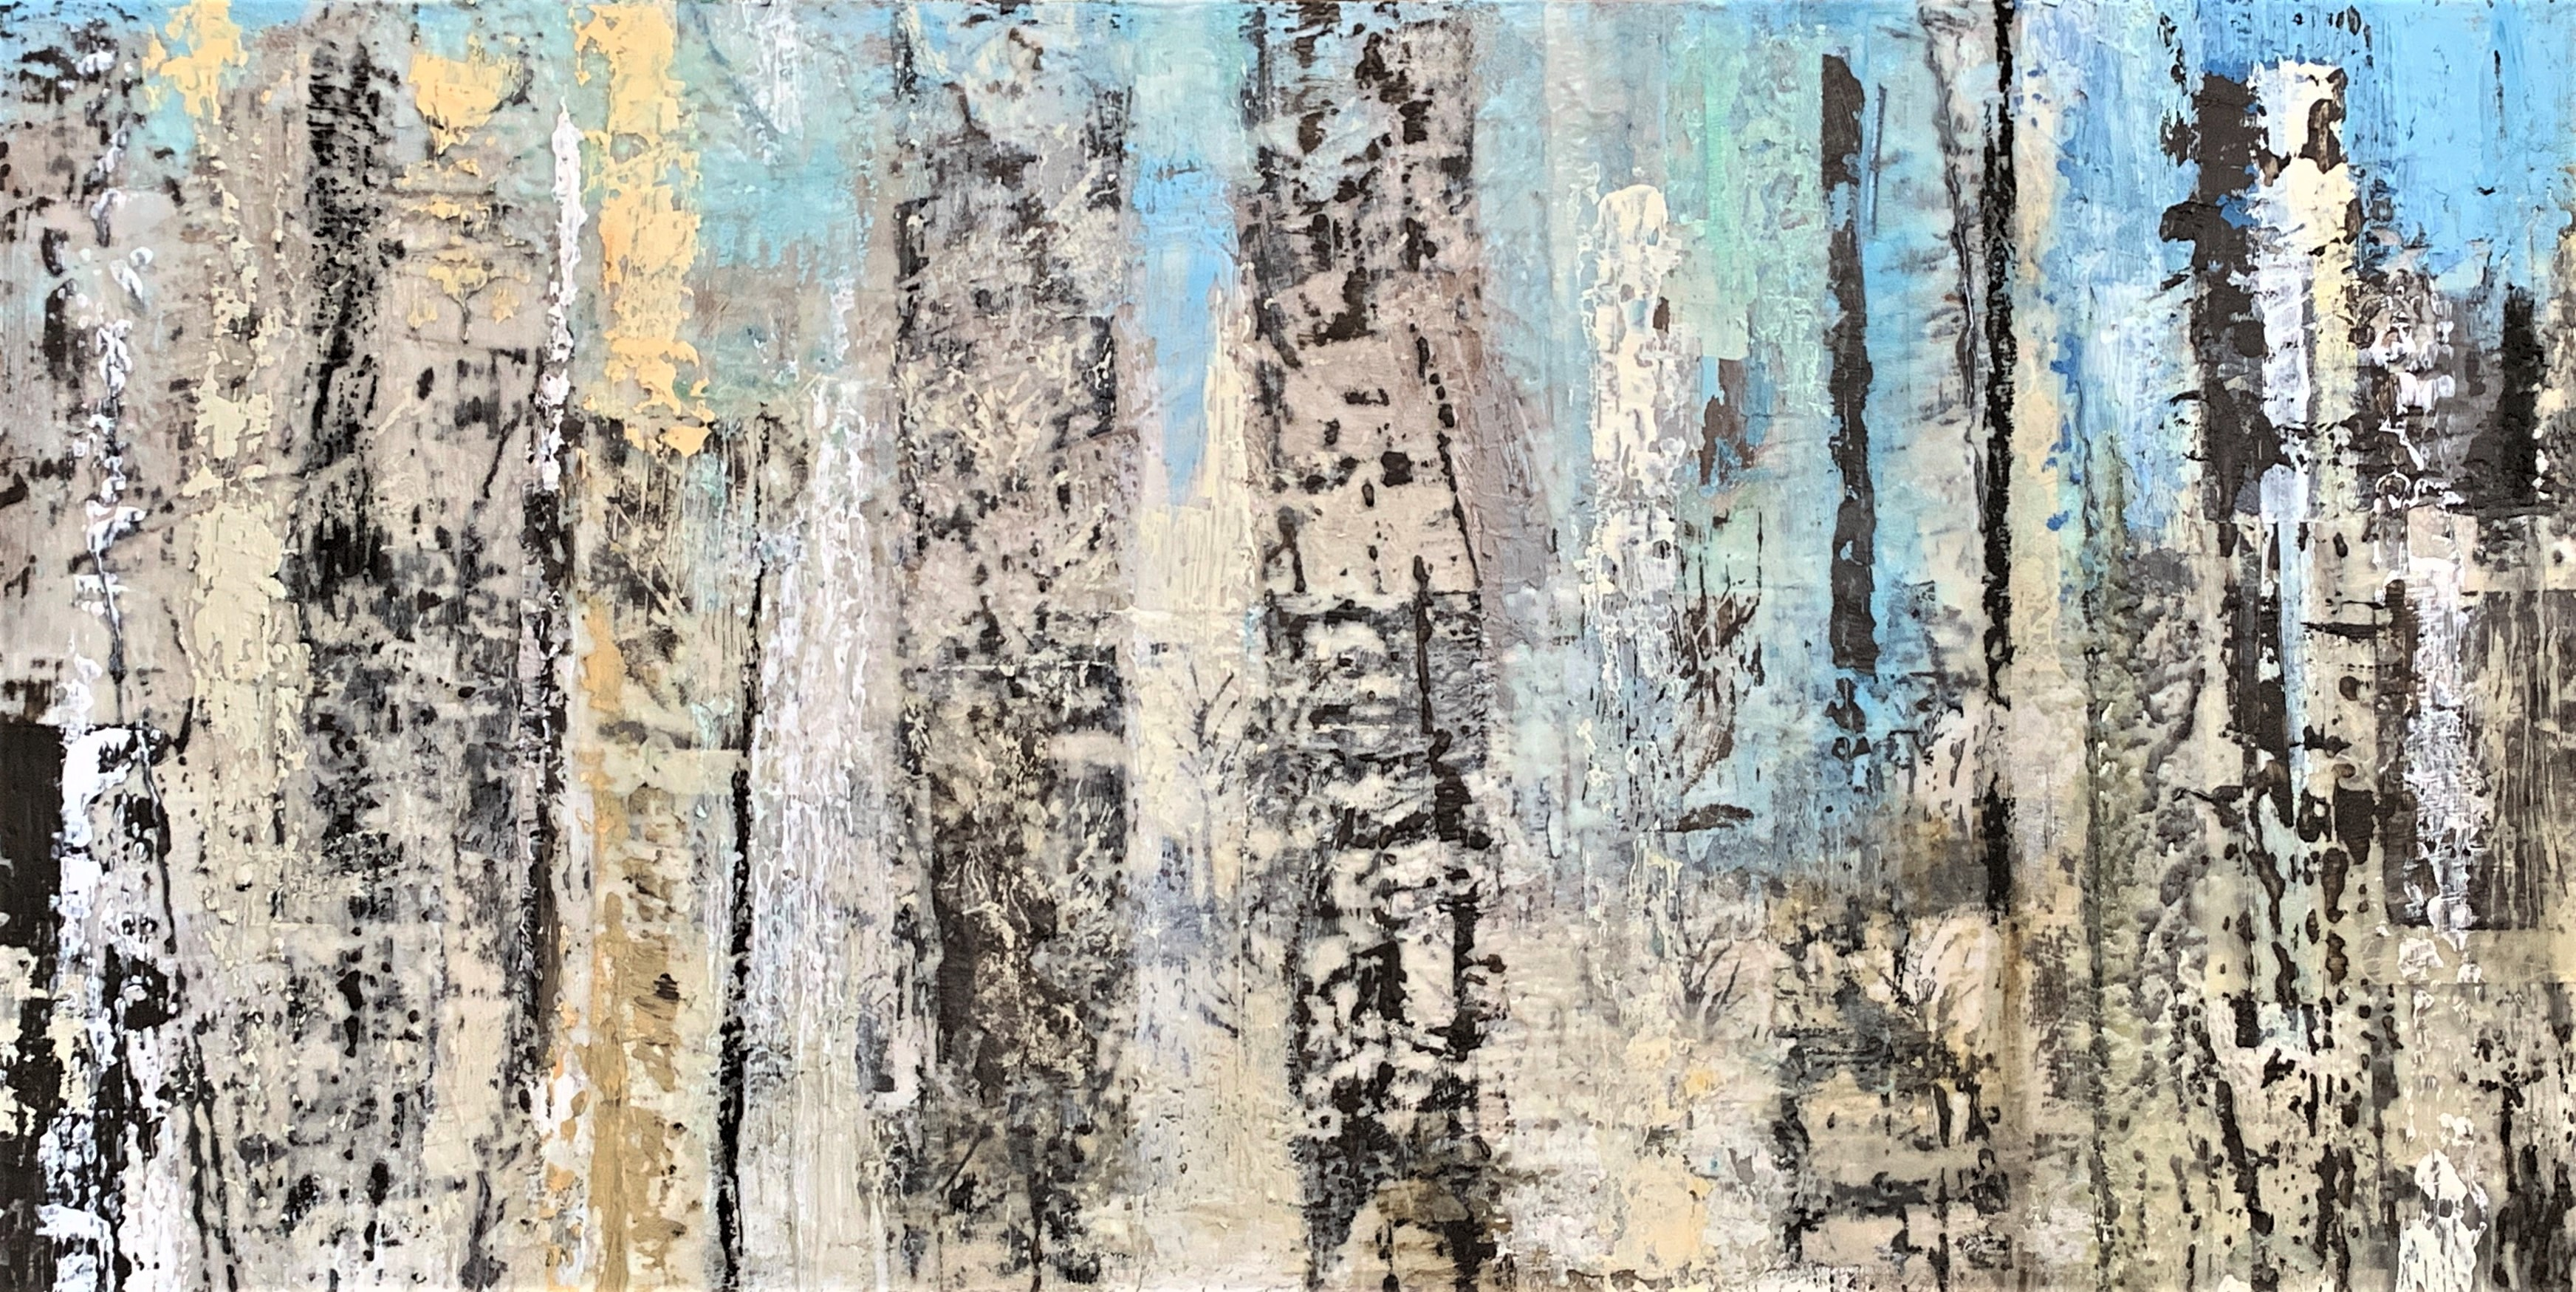 Williams_Birches 48 inches by 24 inches Encaustic with Mixed Media